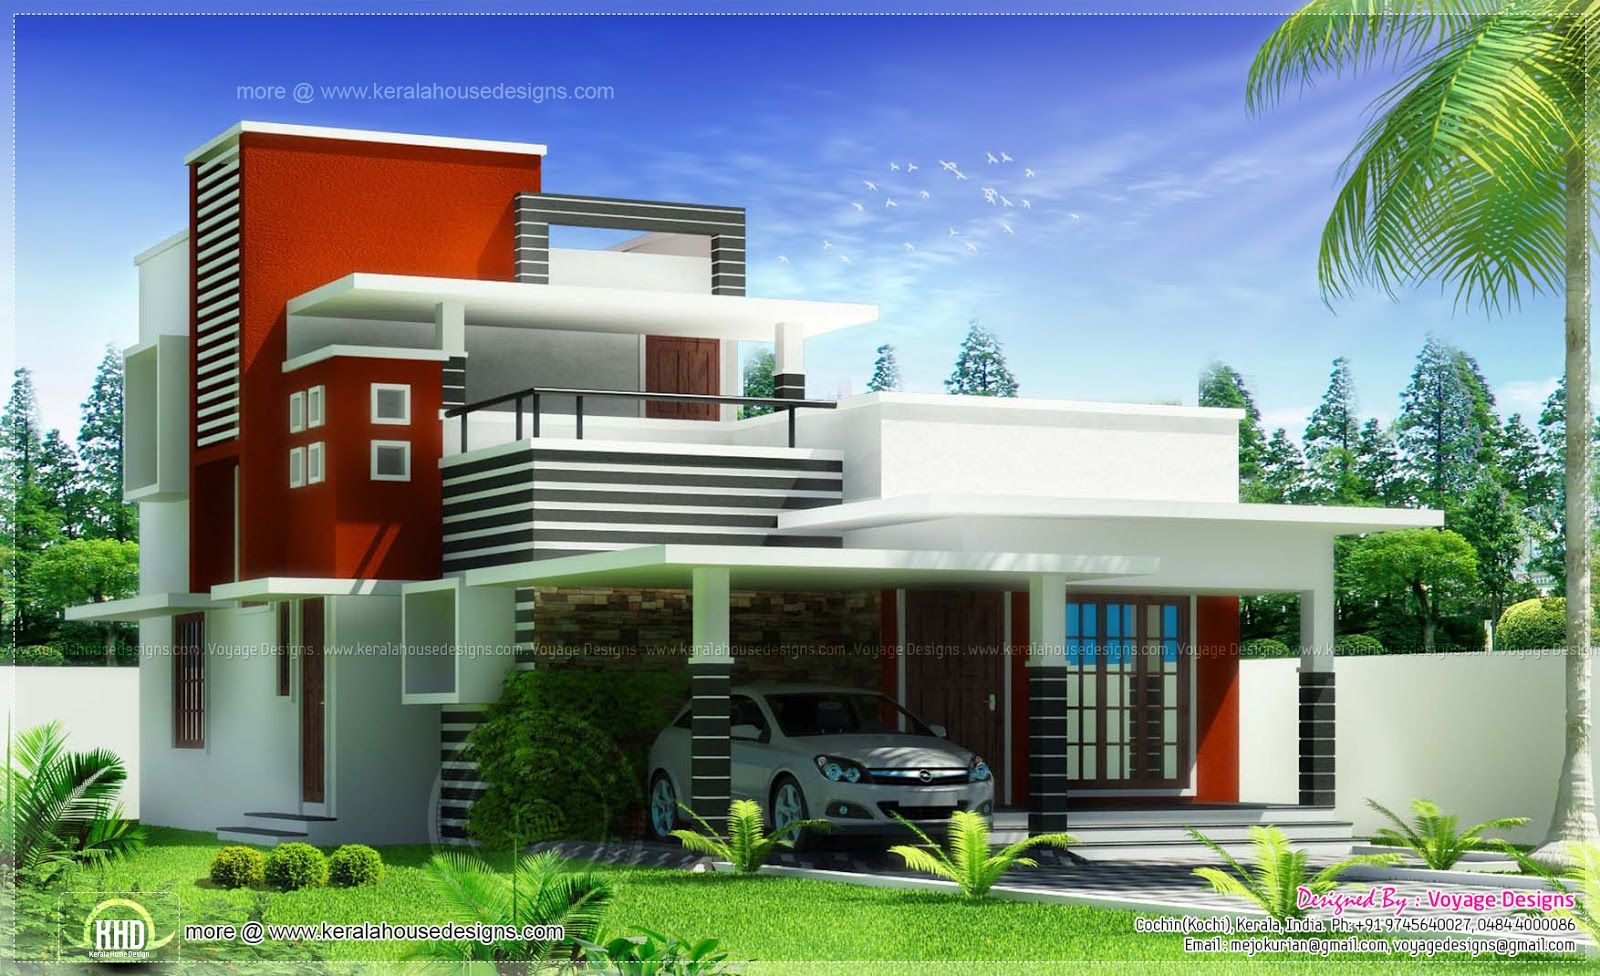 kerala house designs architecture pinterest kerala